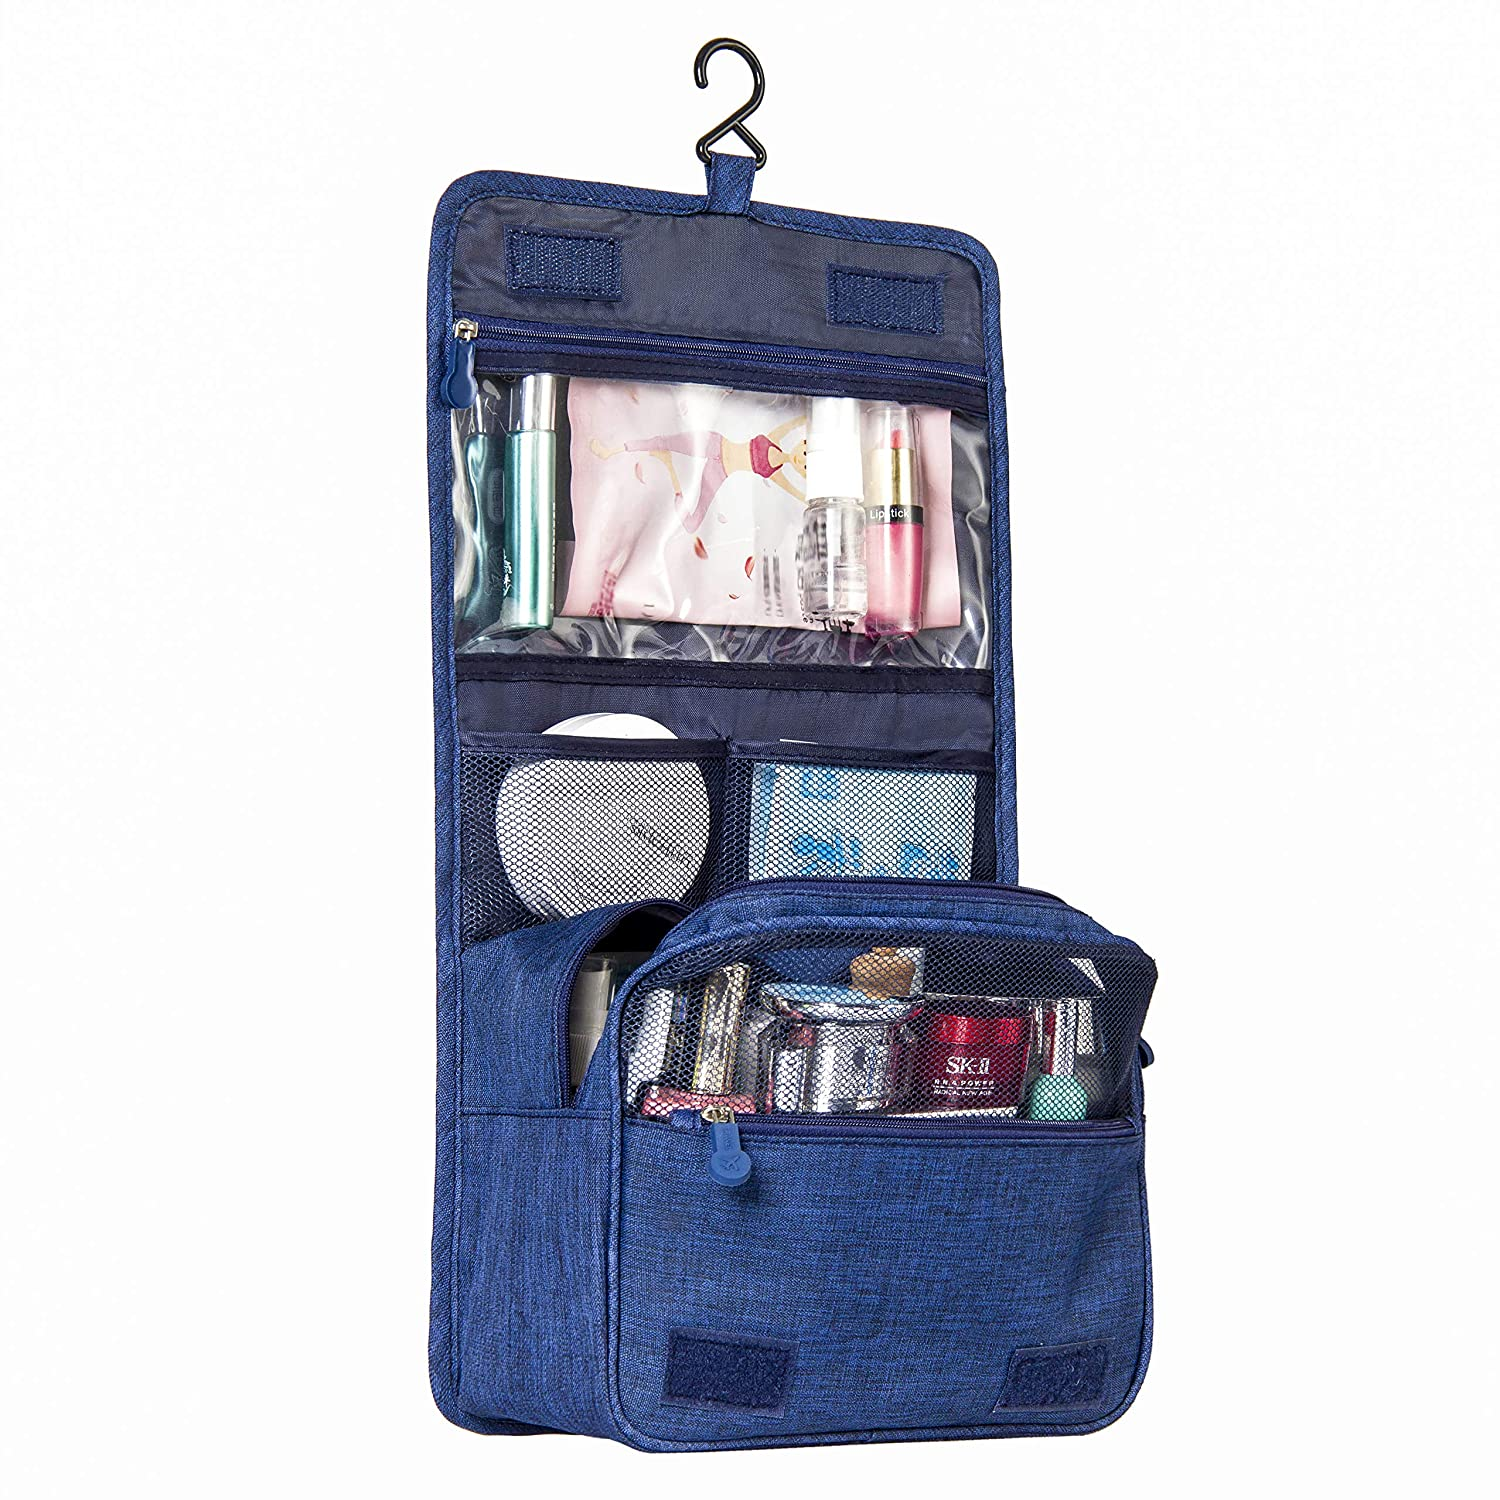 Travel Hanging Toiletry Bag Organizer-Compact Cosmetic Makeup Shaving Dopp Kit Bag for Women Men with Strong Hook Pocket-Hygiene Waterproof Travel Toiletries Bag-Toilet Bathroom Shower Accessories